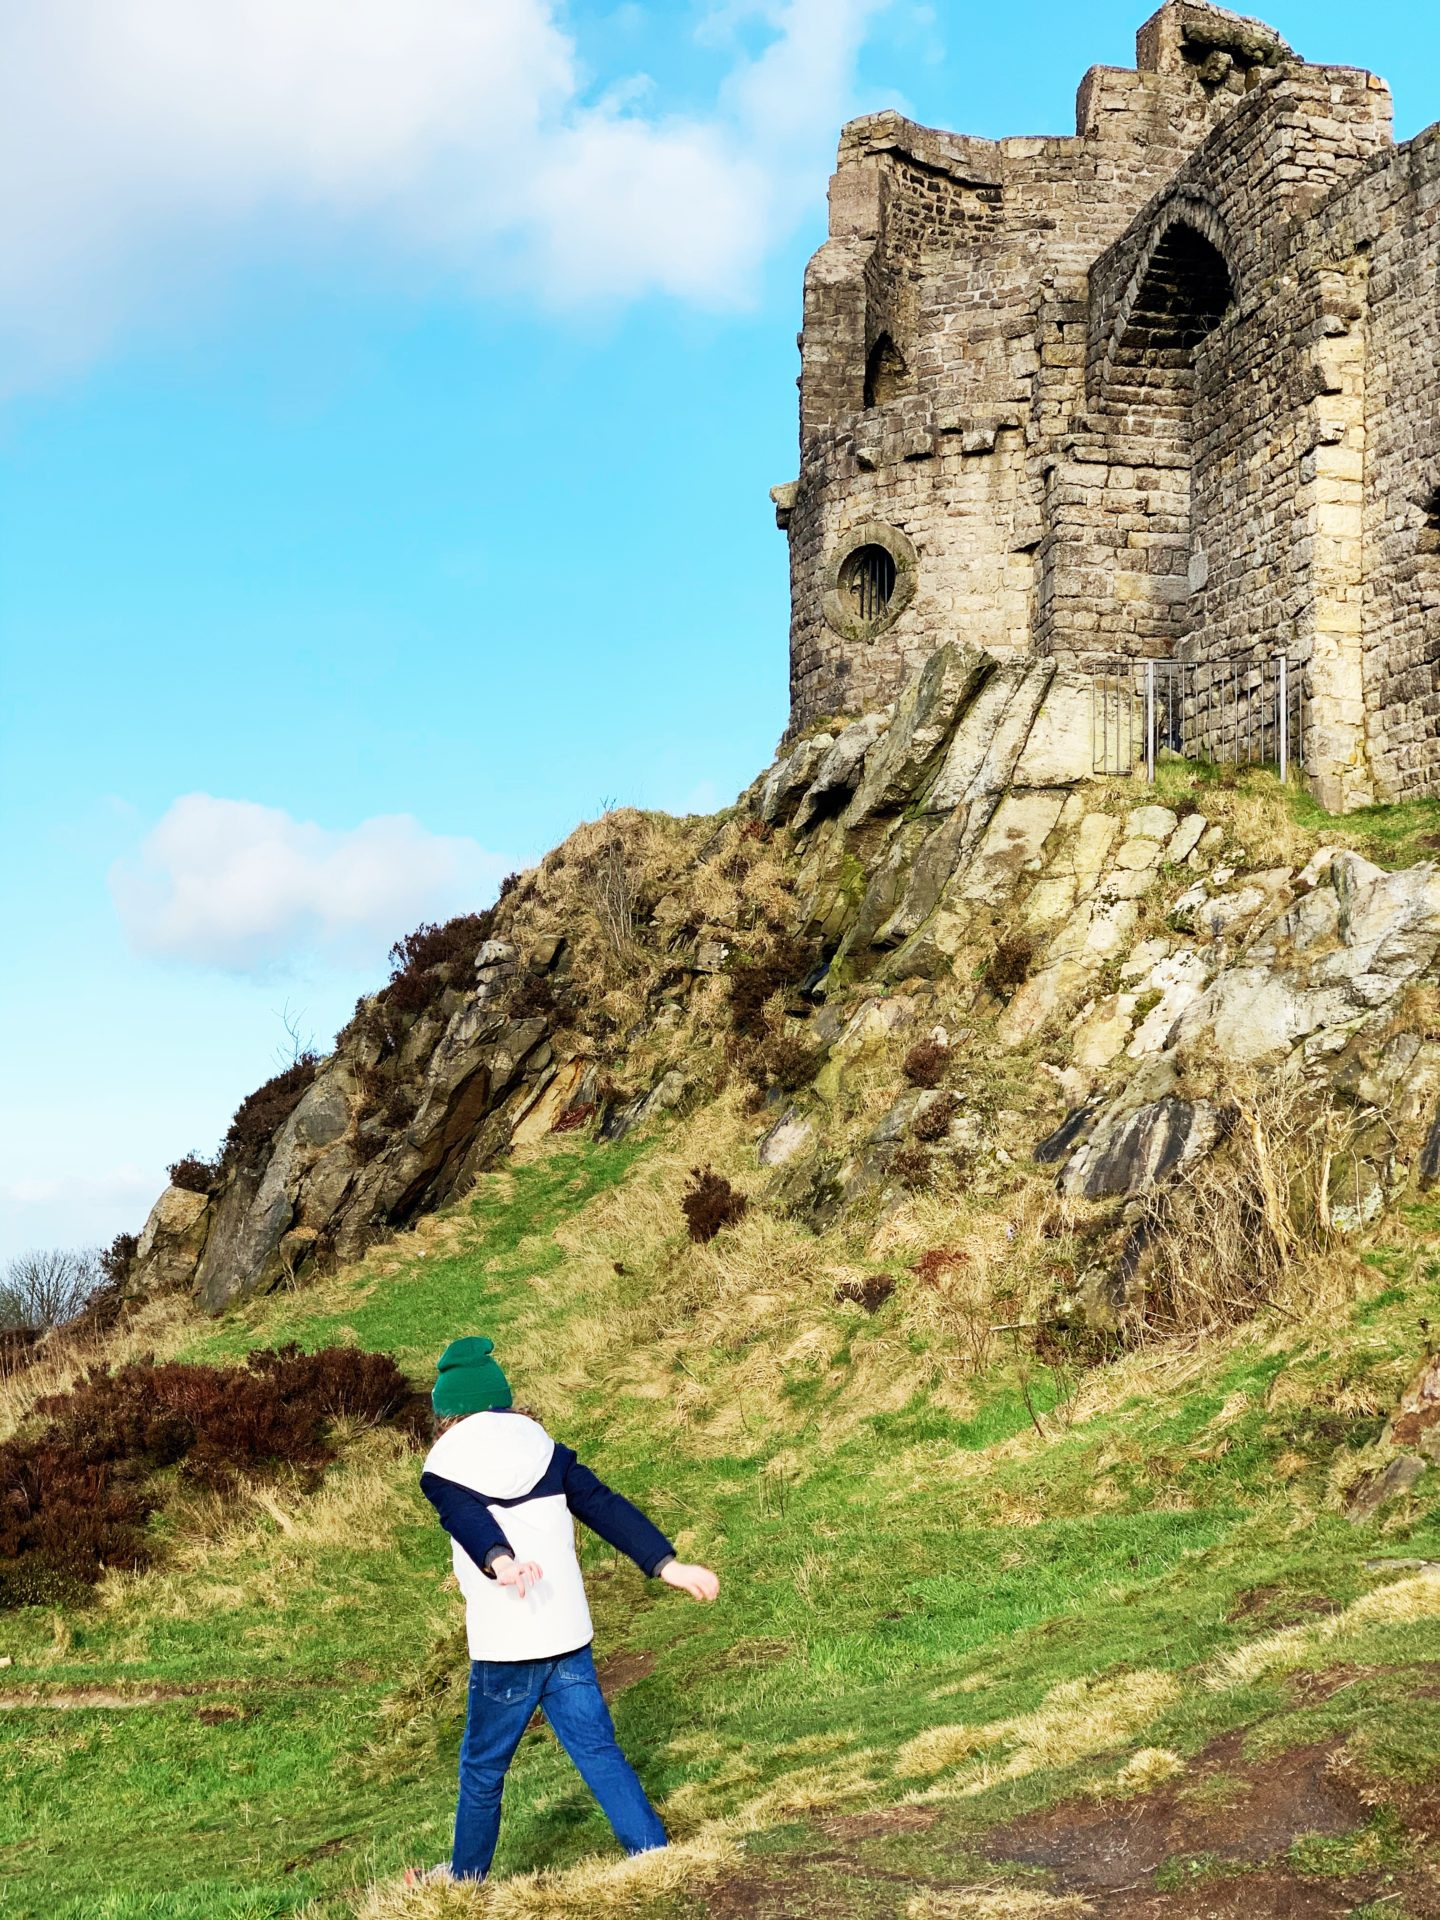 10 days out in Staffordshire - February Half Term